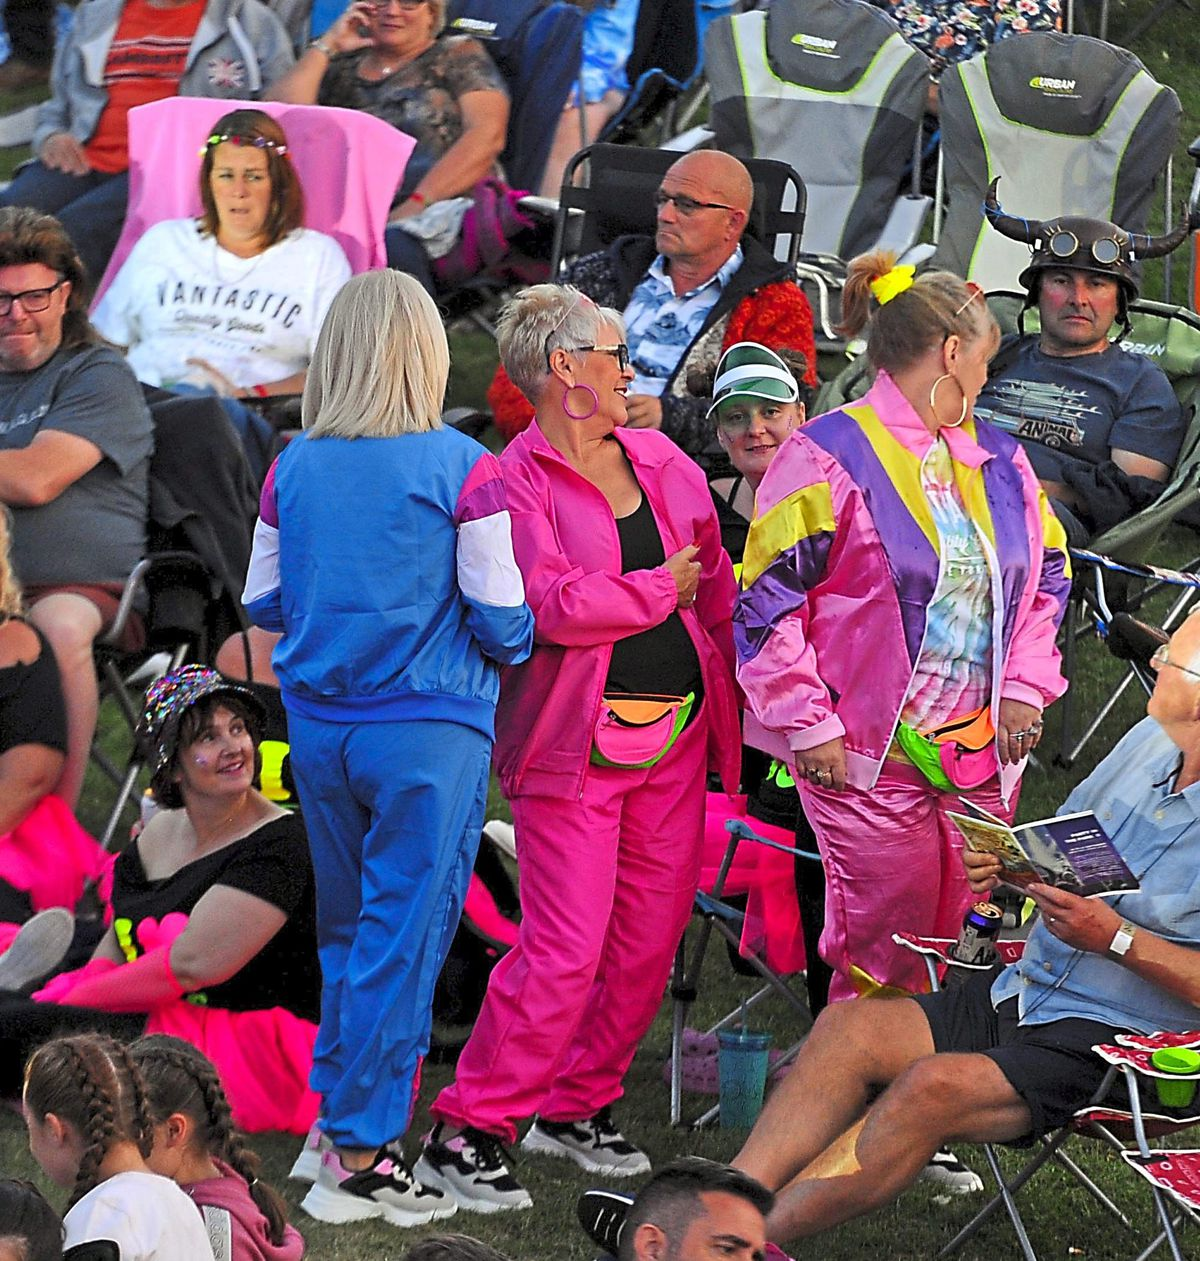 Crowds were getting into the spirit of the 1980s day